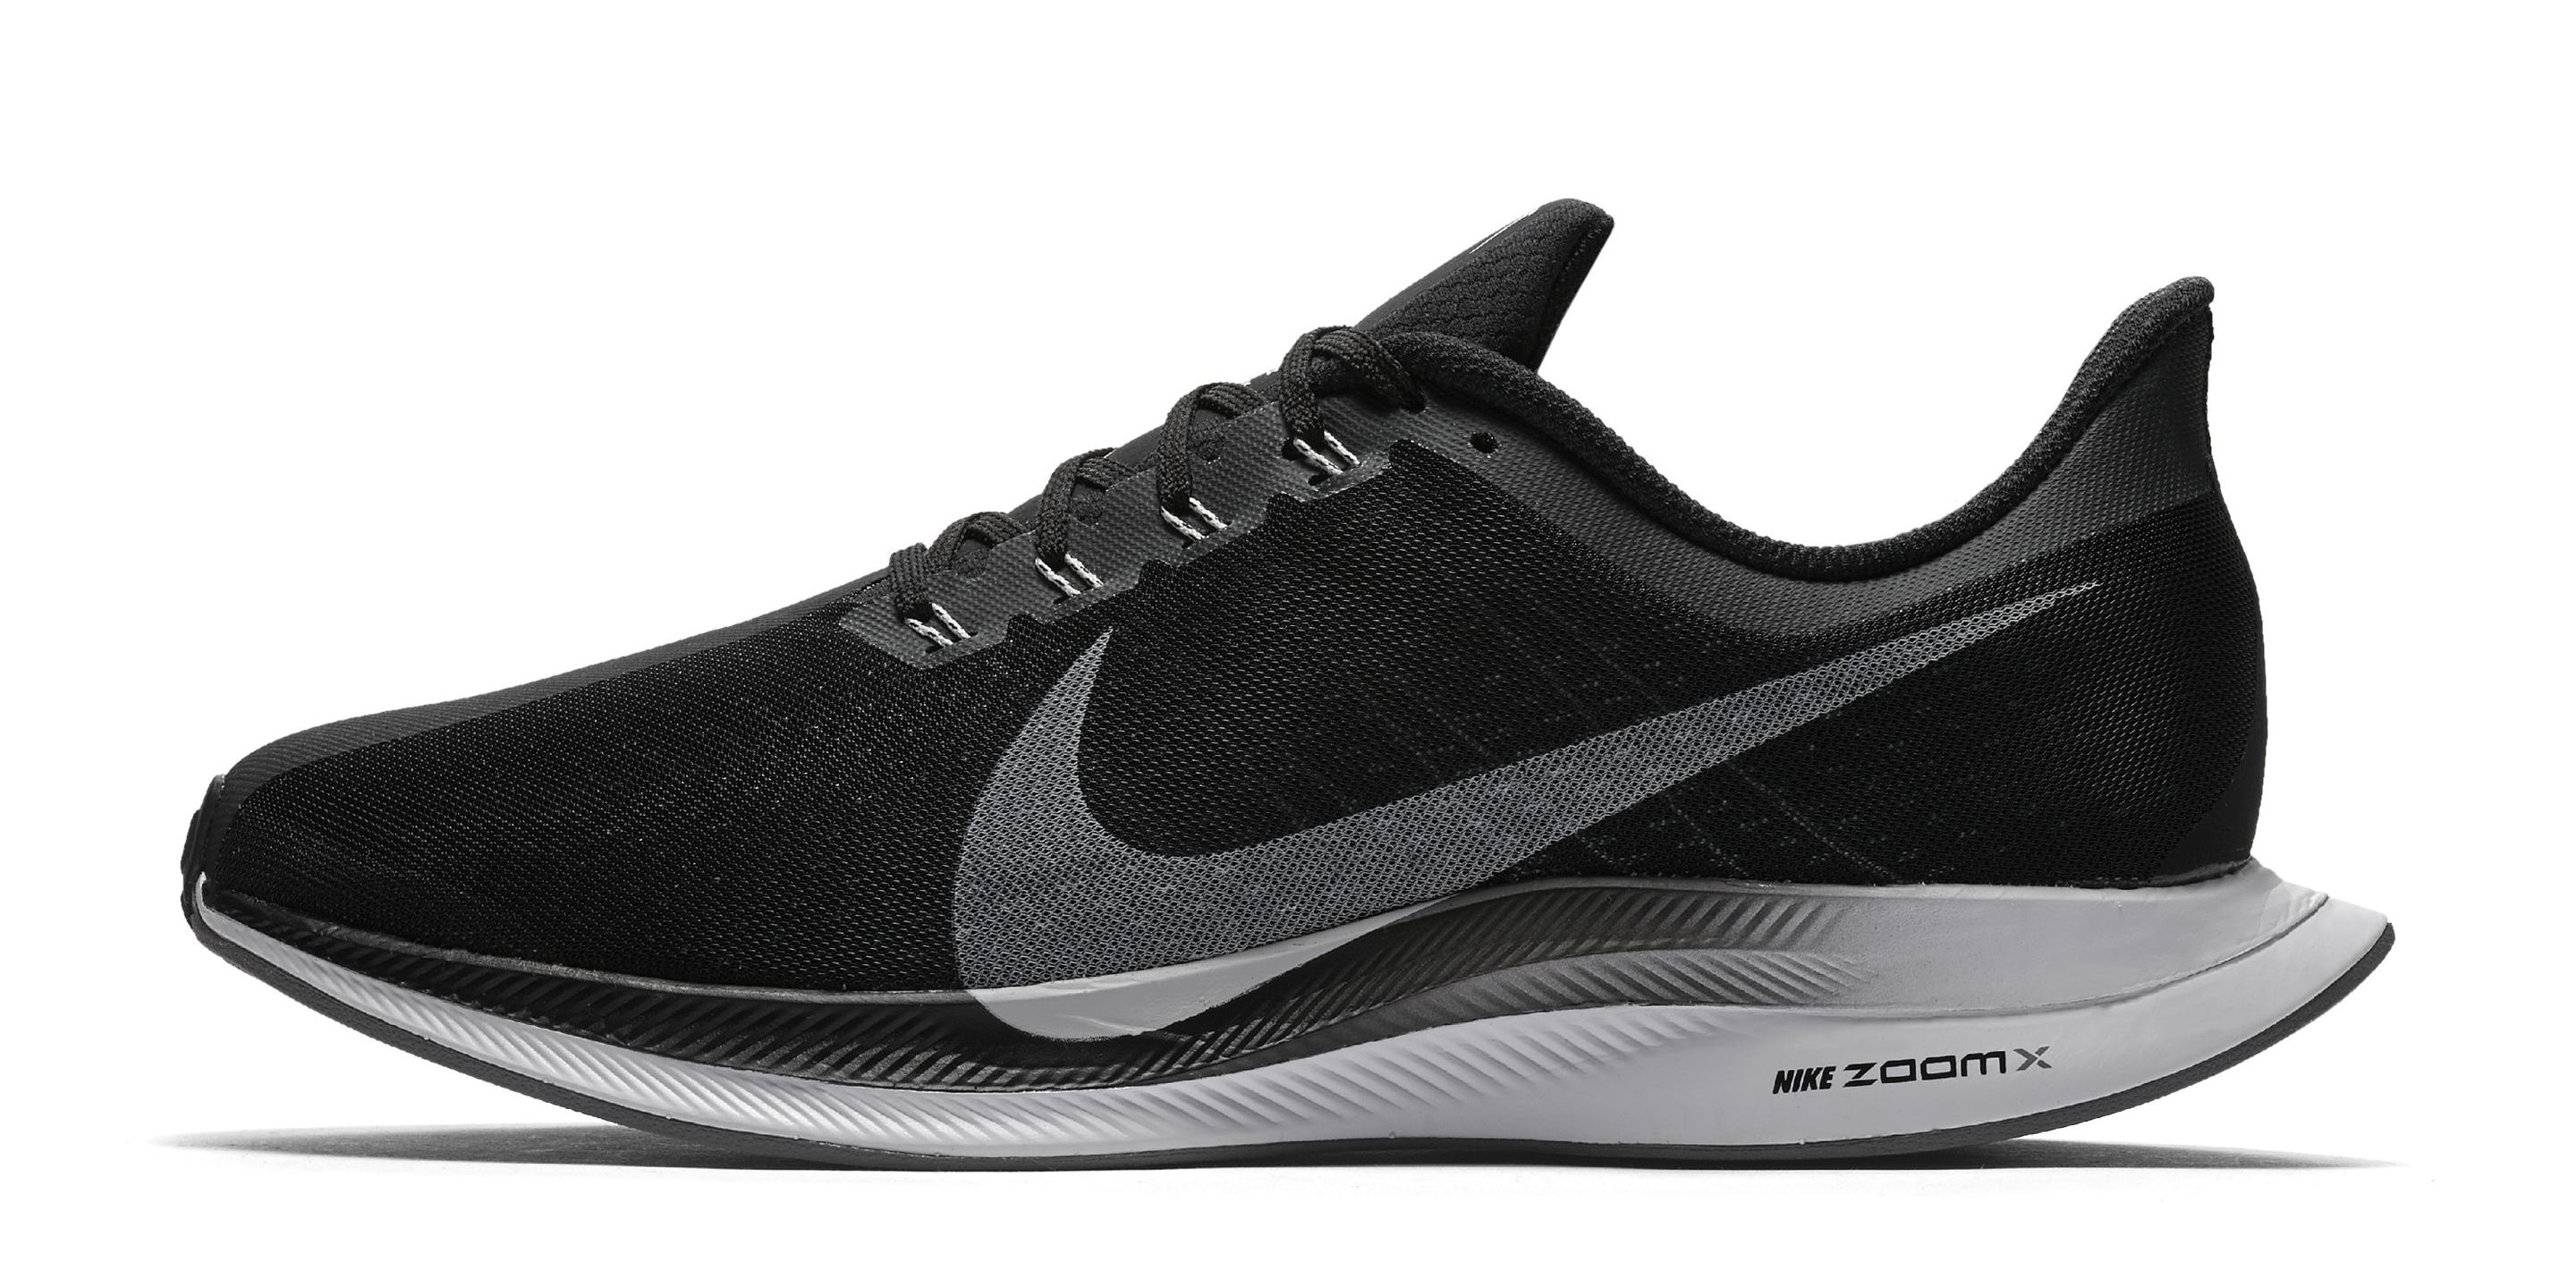 buy online 6ba6f 0a341 Best Nike Running Shoes | Nike Shoe Reviews 2019